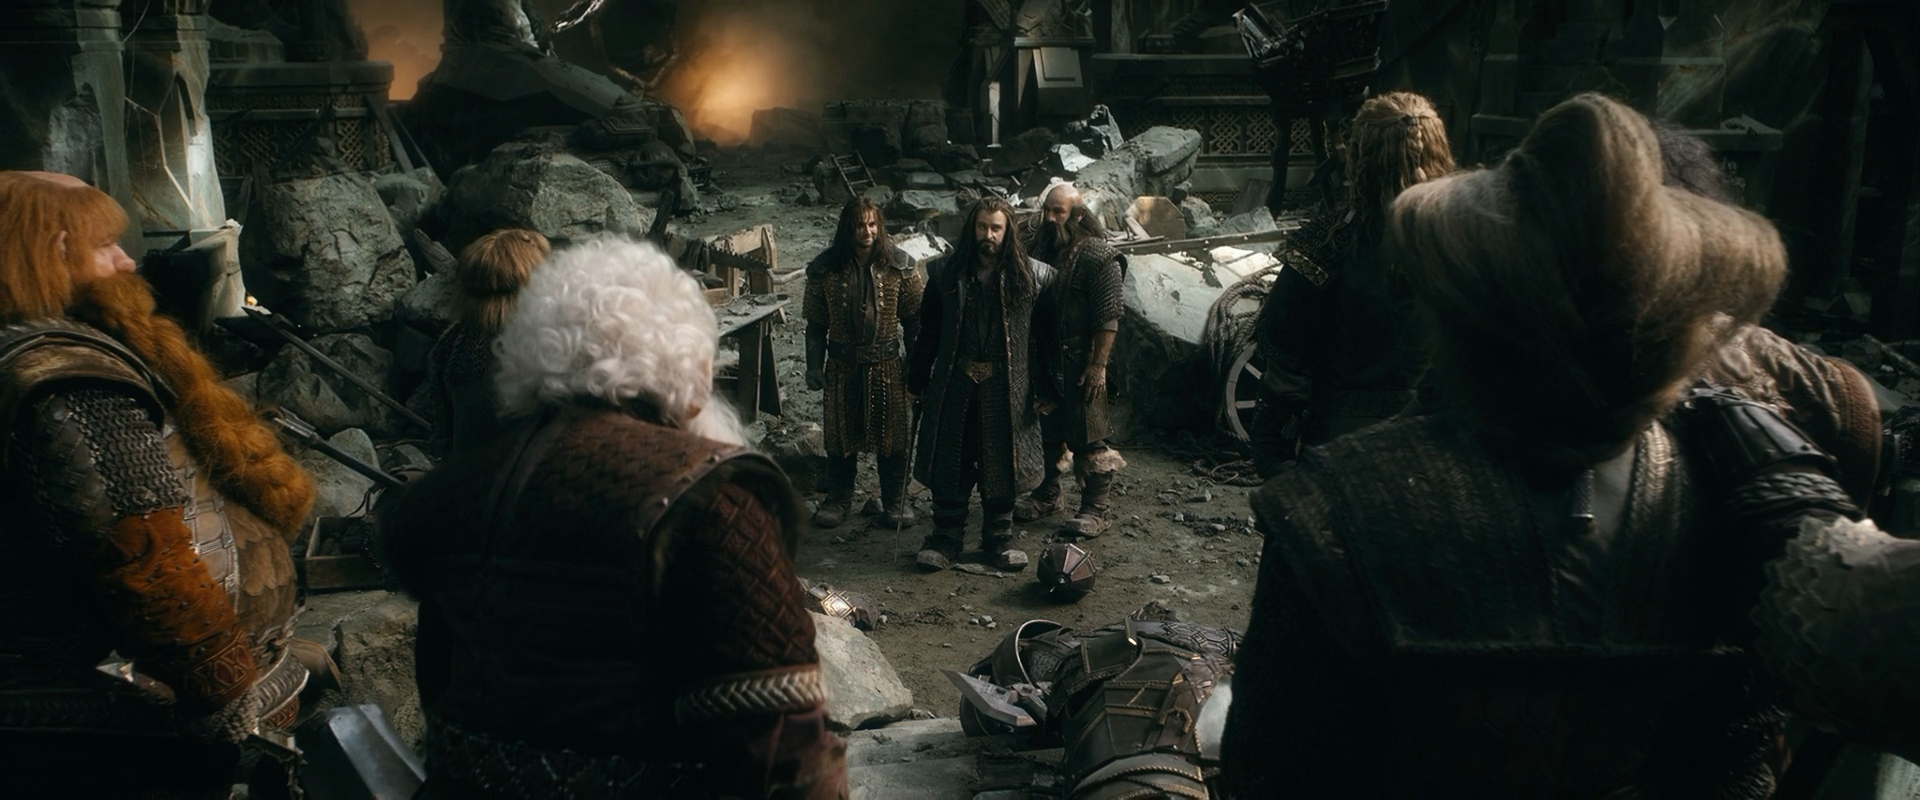 Хоббит: Битва пяти воинств / The Hobbit: The Battle of the Five Armies (2014) BDRip 1080p | 60 FPS